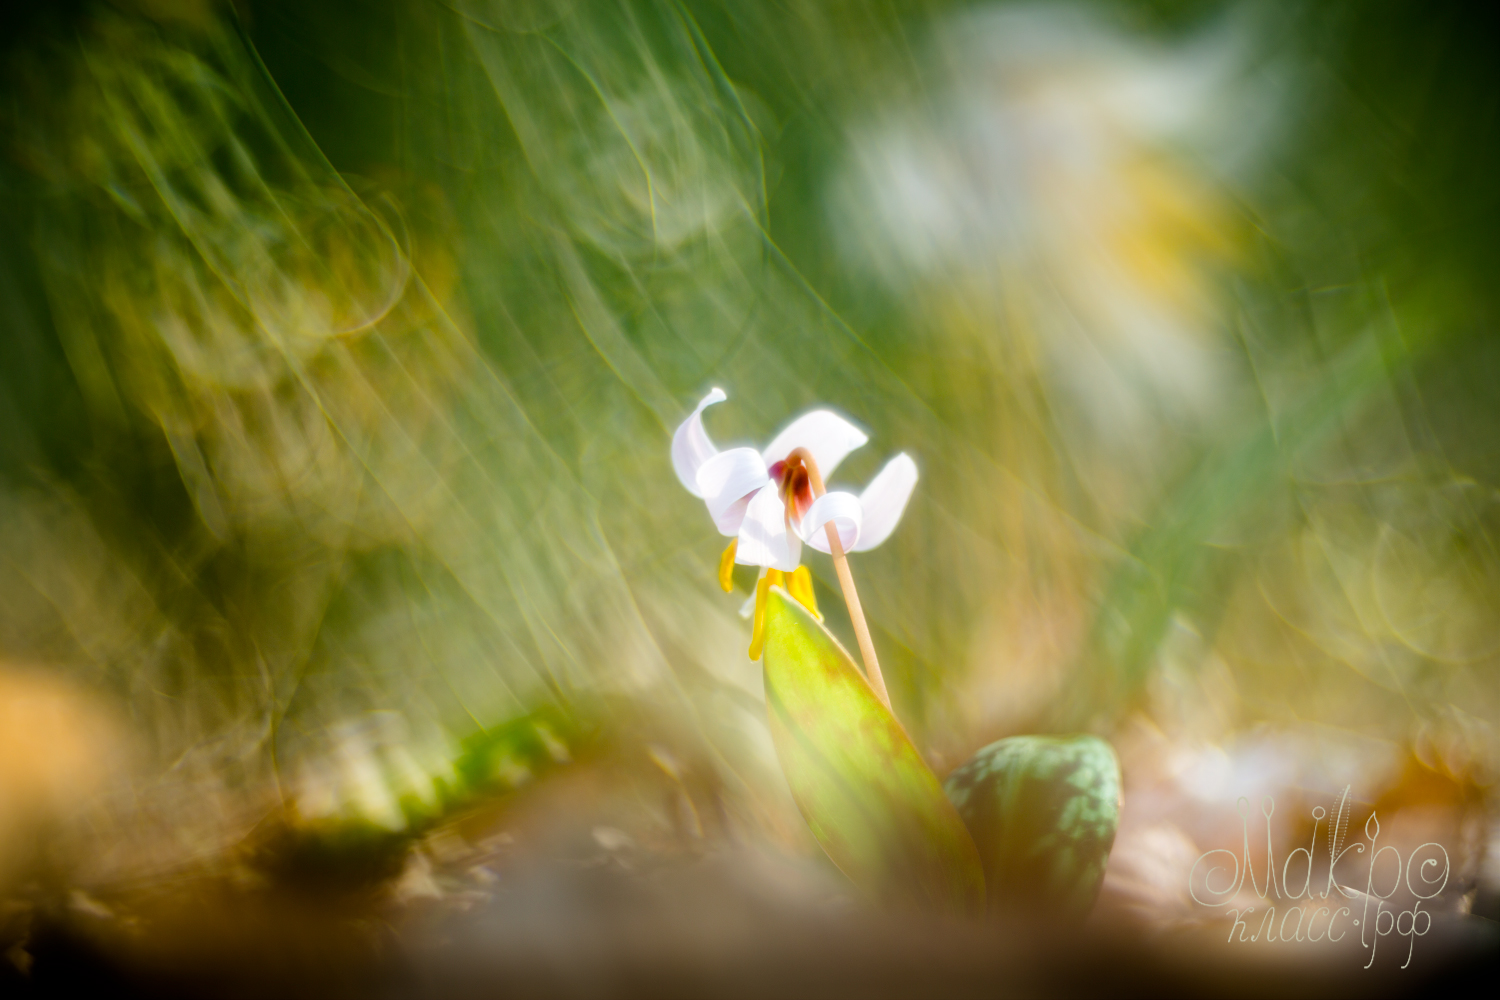 Erythronium in the wilds of space-time